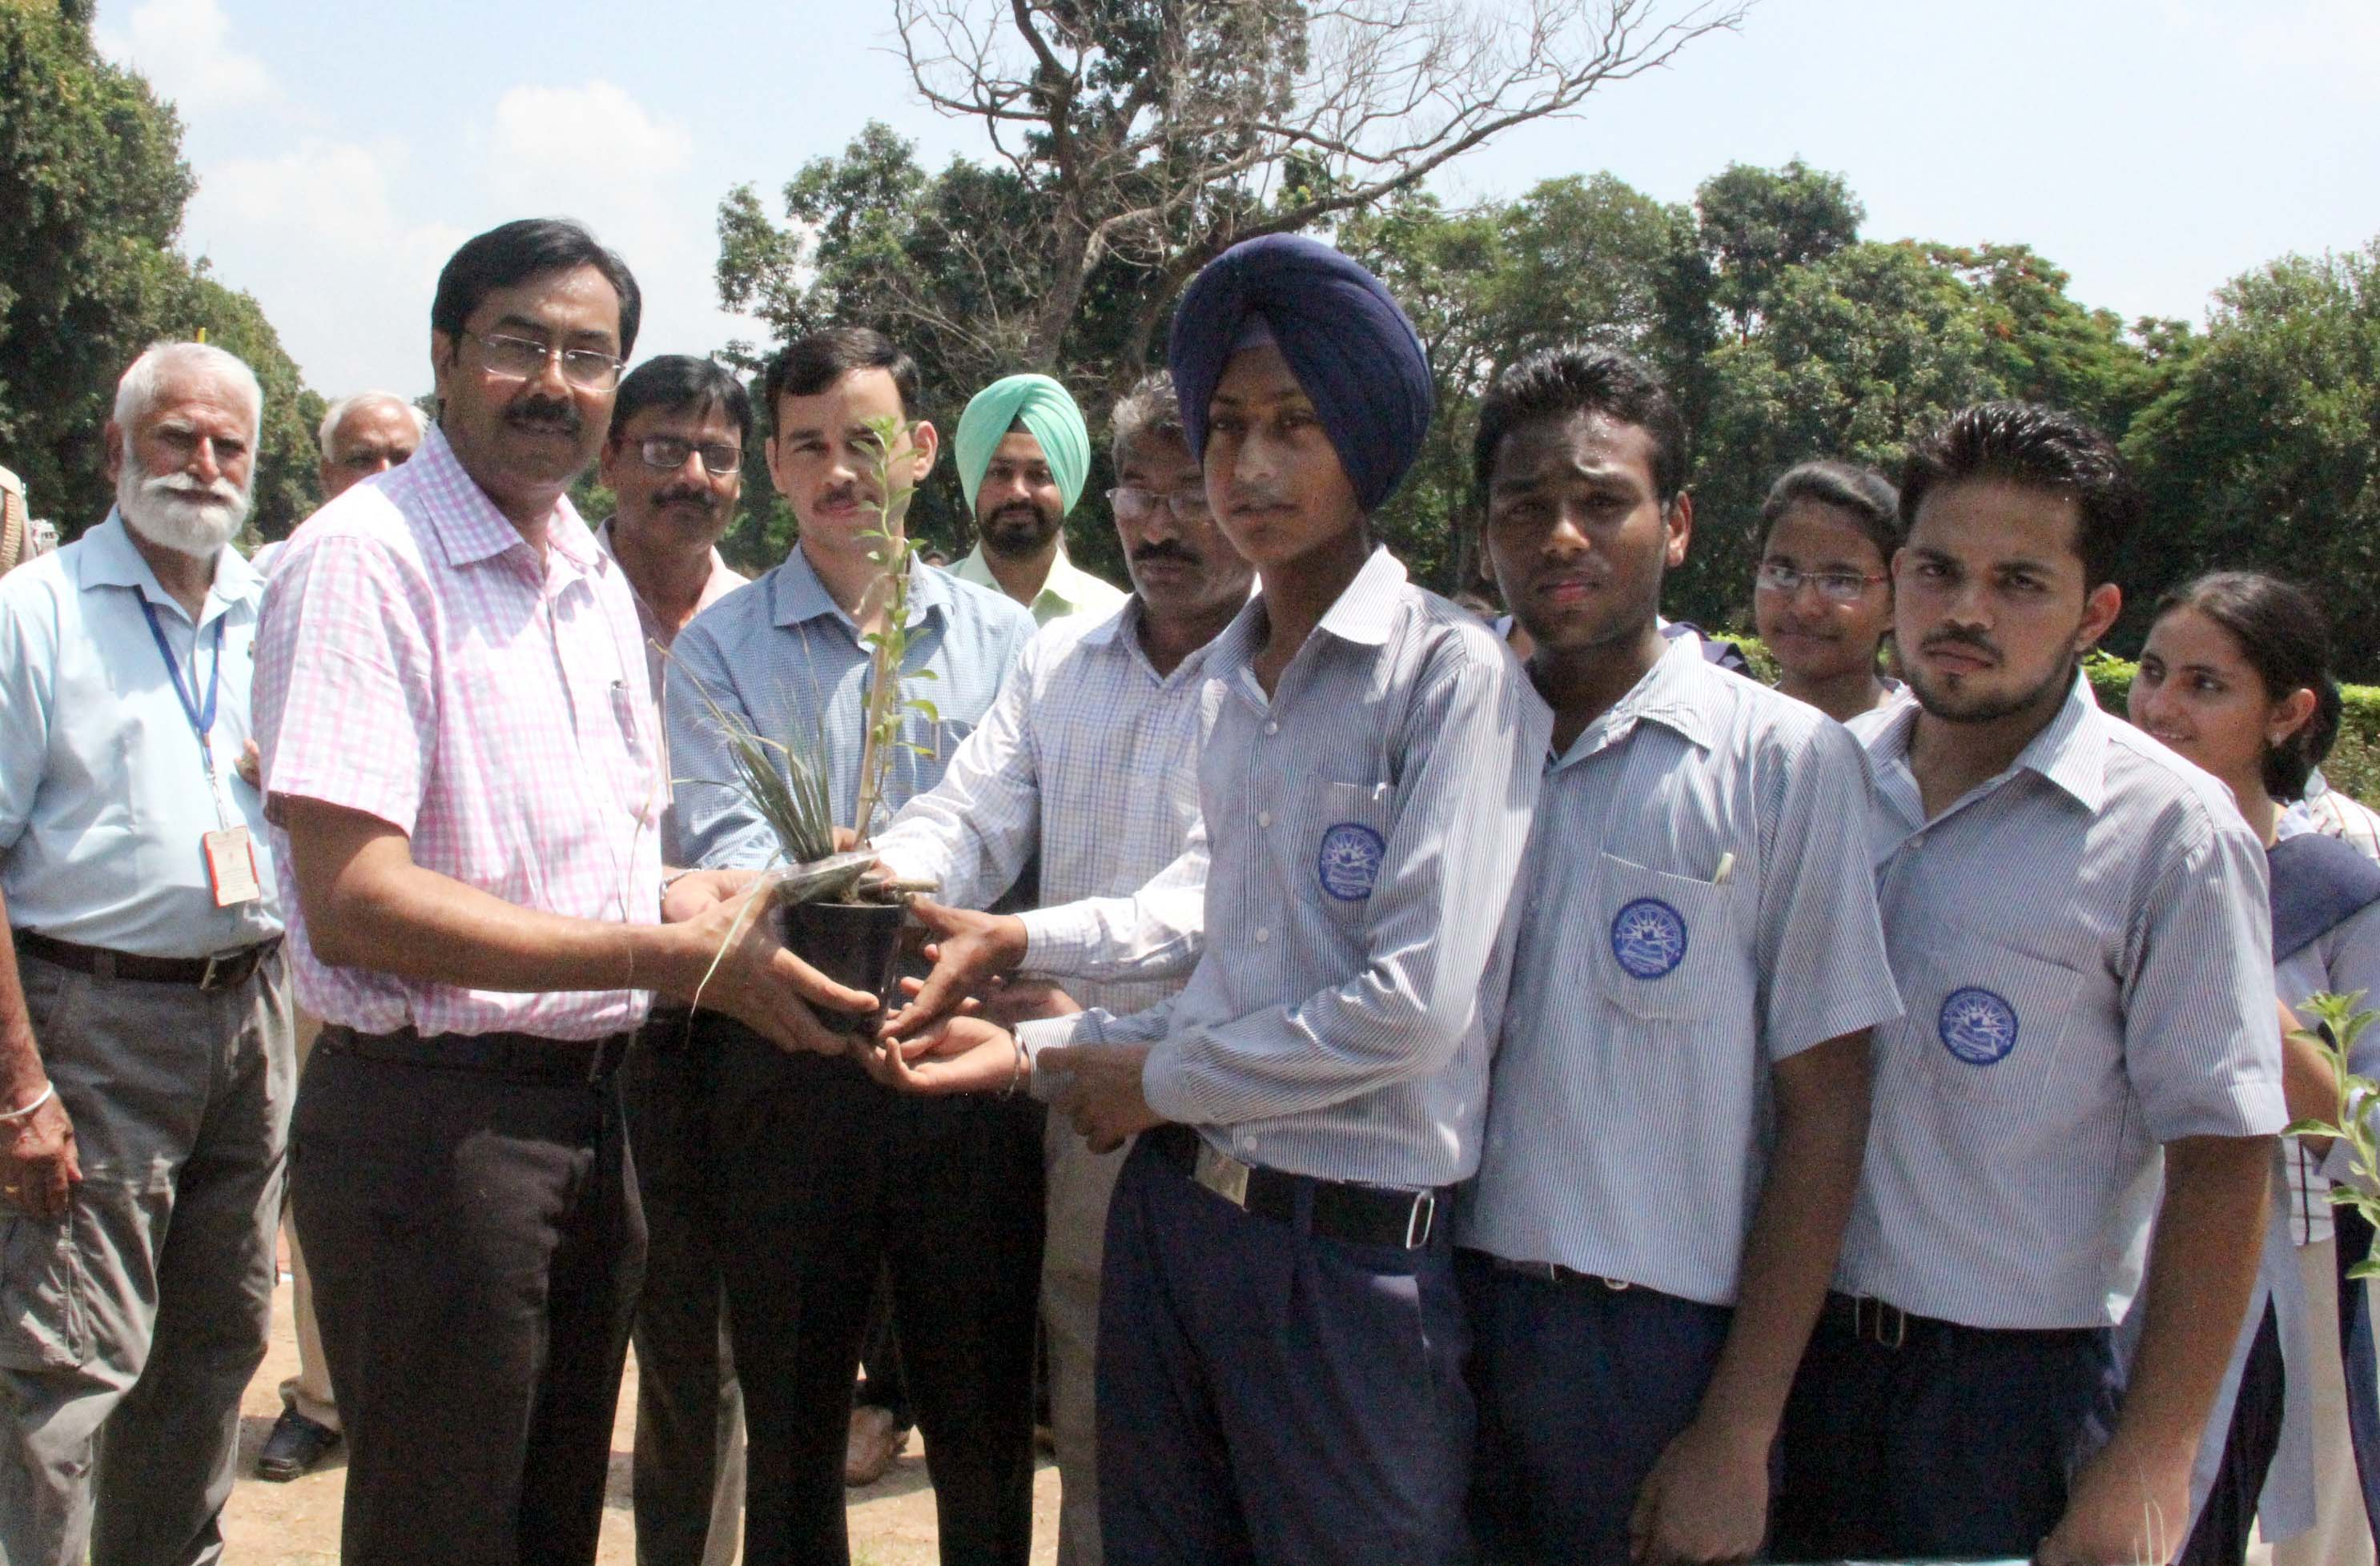 UT Home Secretary, Mr. Anil Kumar distributing sapling plants to the school children on the celebration of HERBAL DAY -2014 at Rose Nursery, Sector-23, Chandigarh on Wednesday, July 30, 2014.